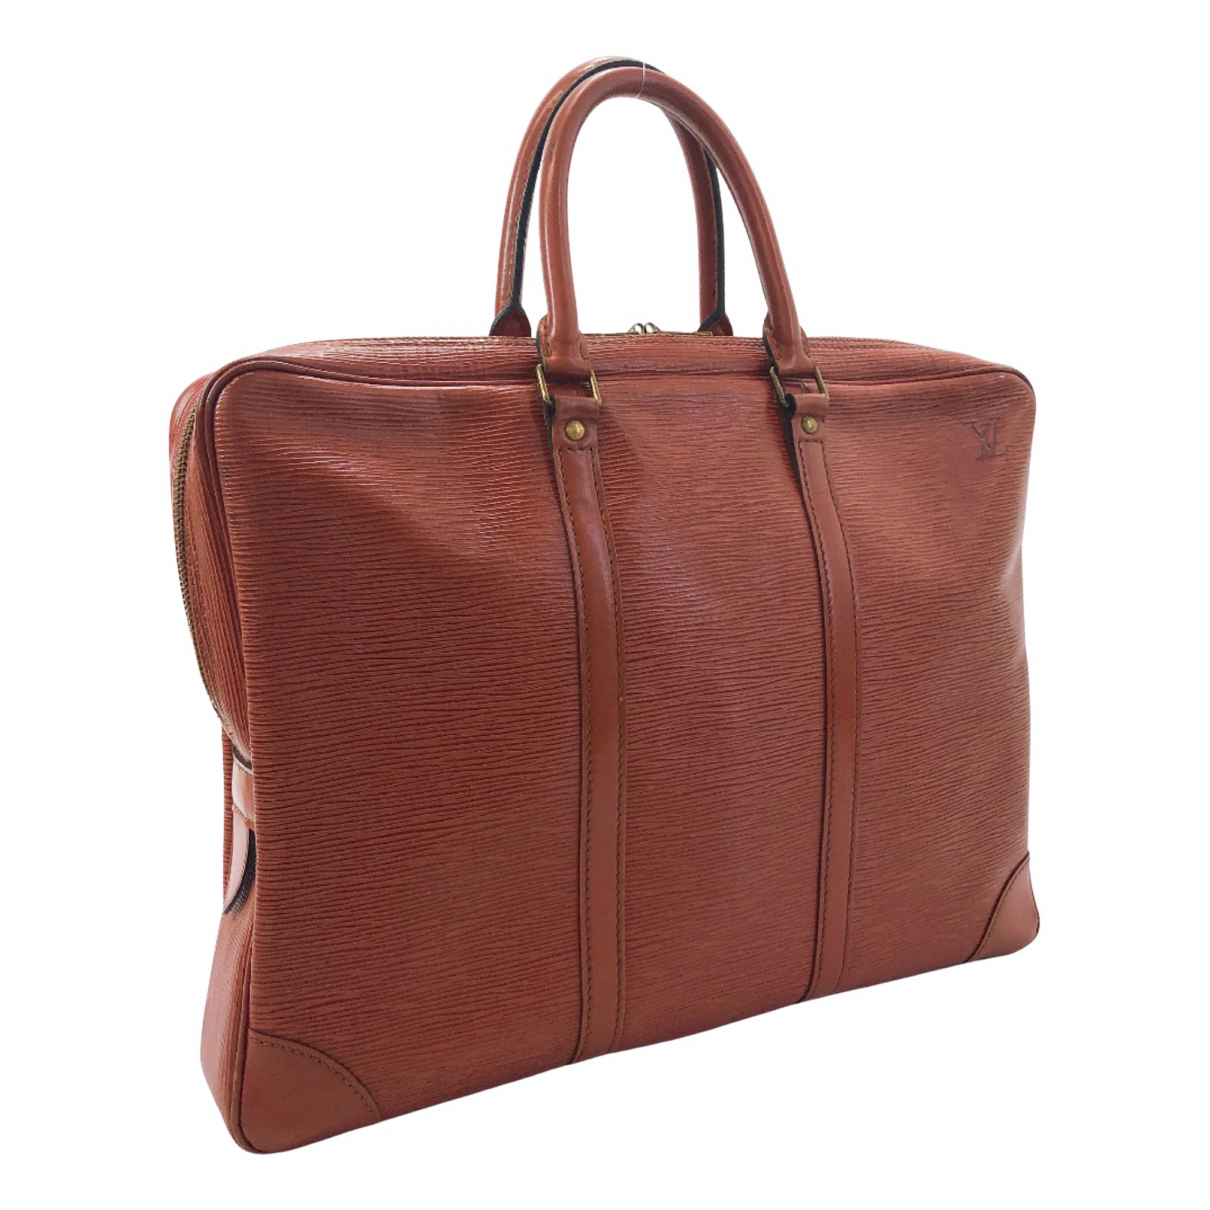 Louis Vuitton Porte Documents Voyage Brown Leather bag for Men N